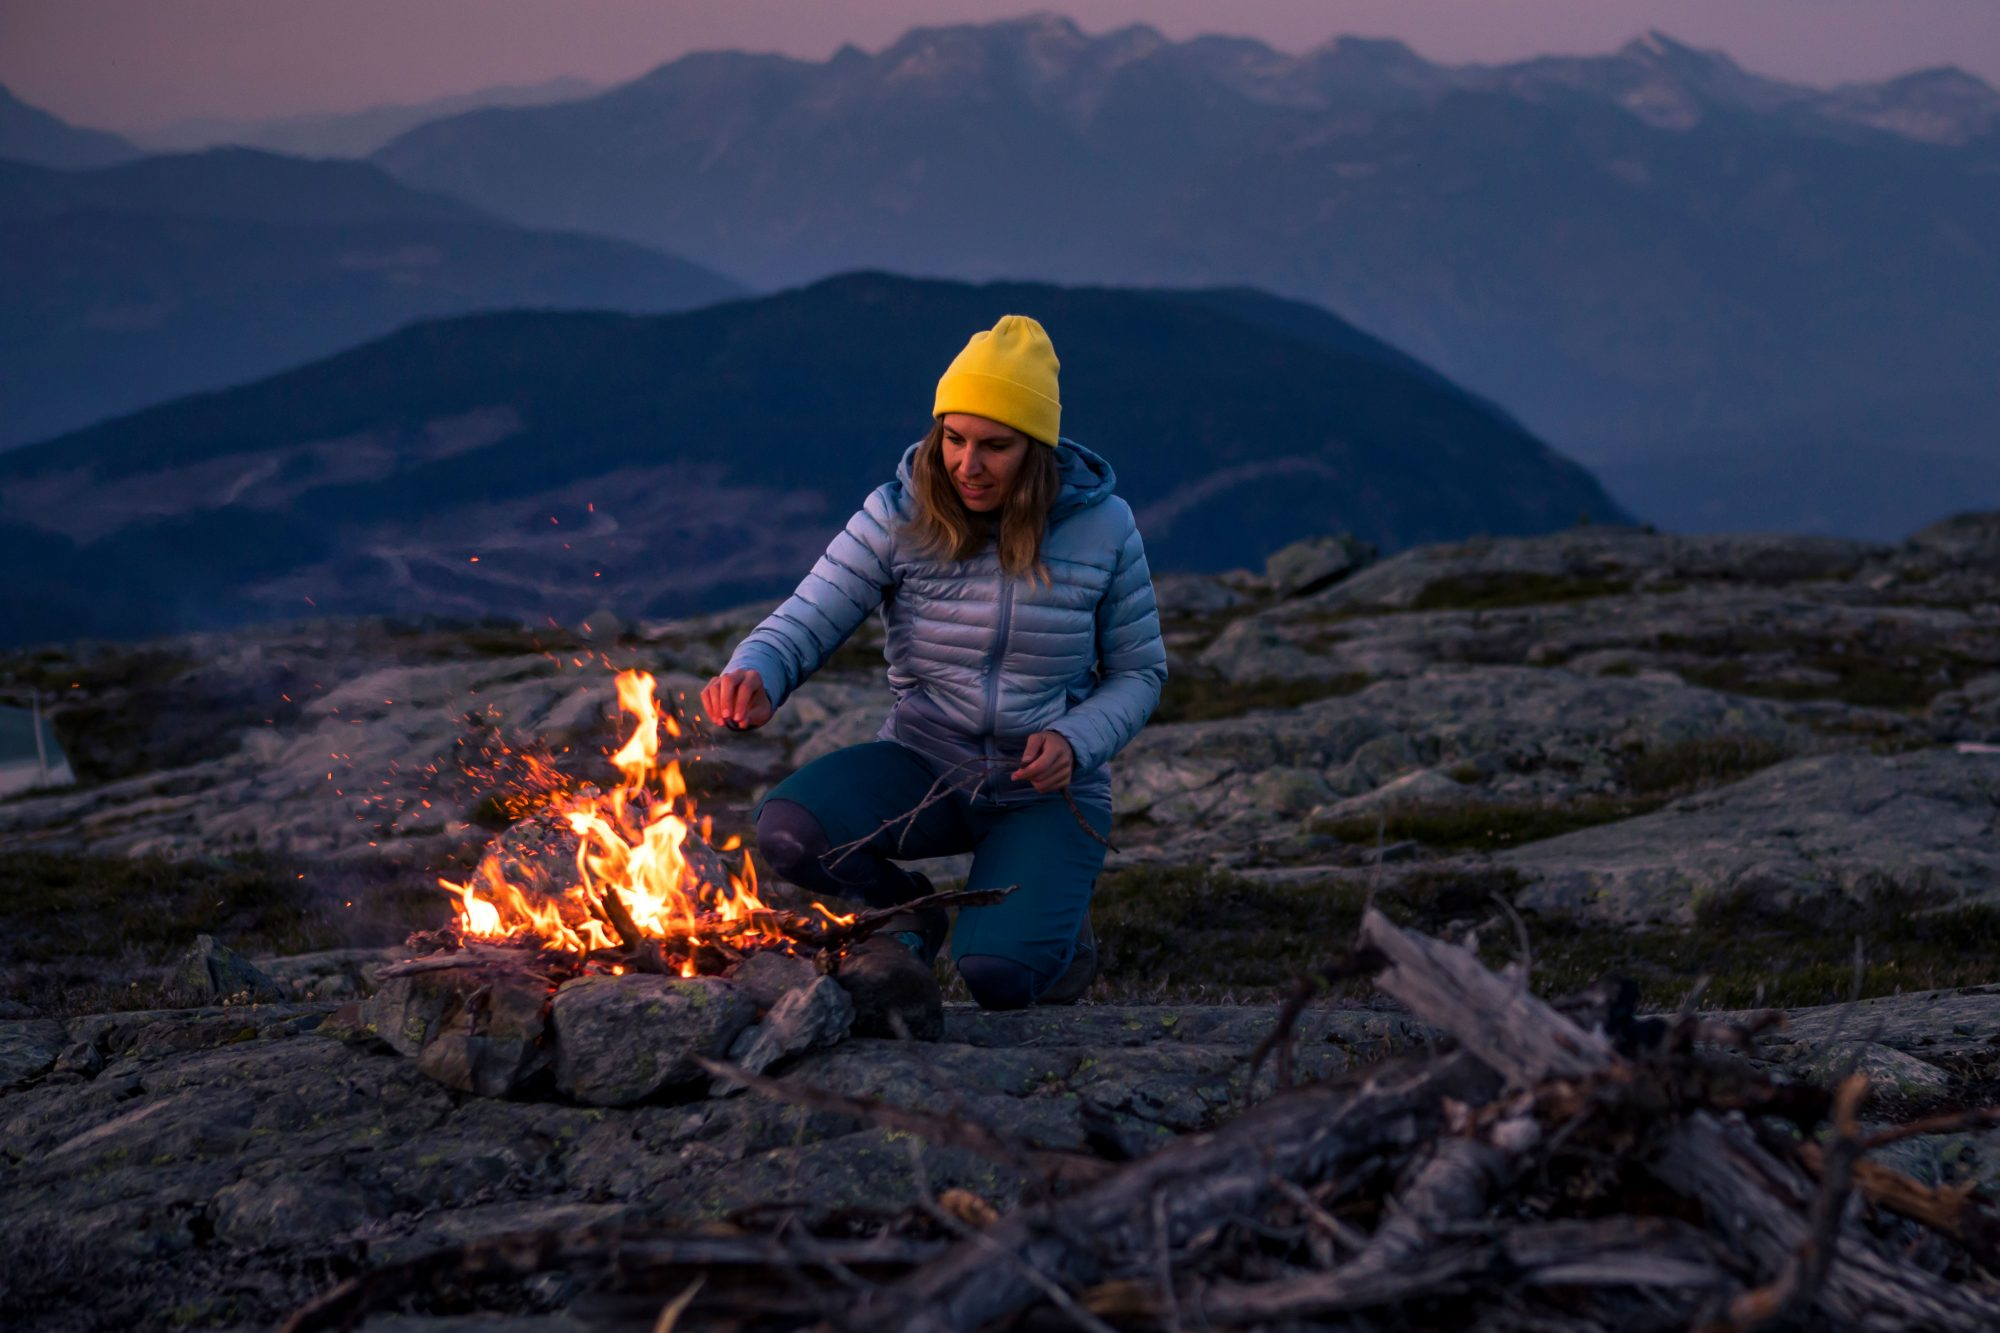 woman lighting campfire on a mountain at dusk